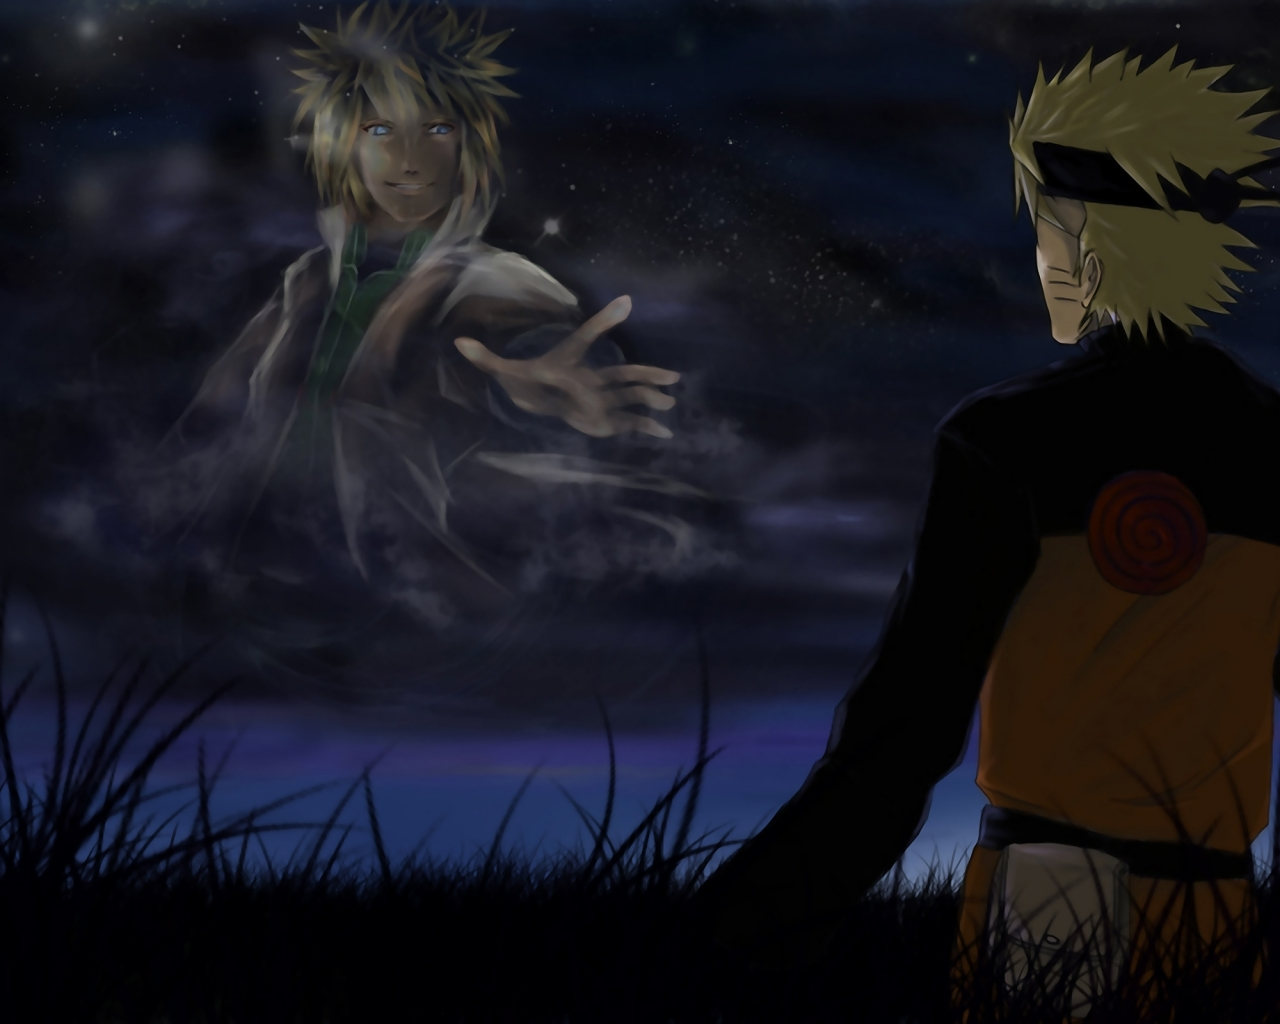 Download Wallpaper Logo Naruto - Naruto-Uzumaki-uzumaki-clan-31514053-1280-1024  Snapshot_879468.jpg